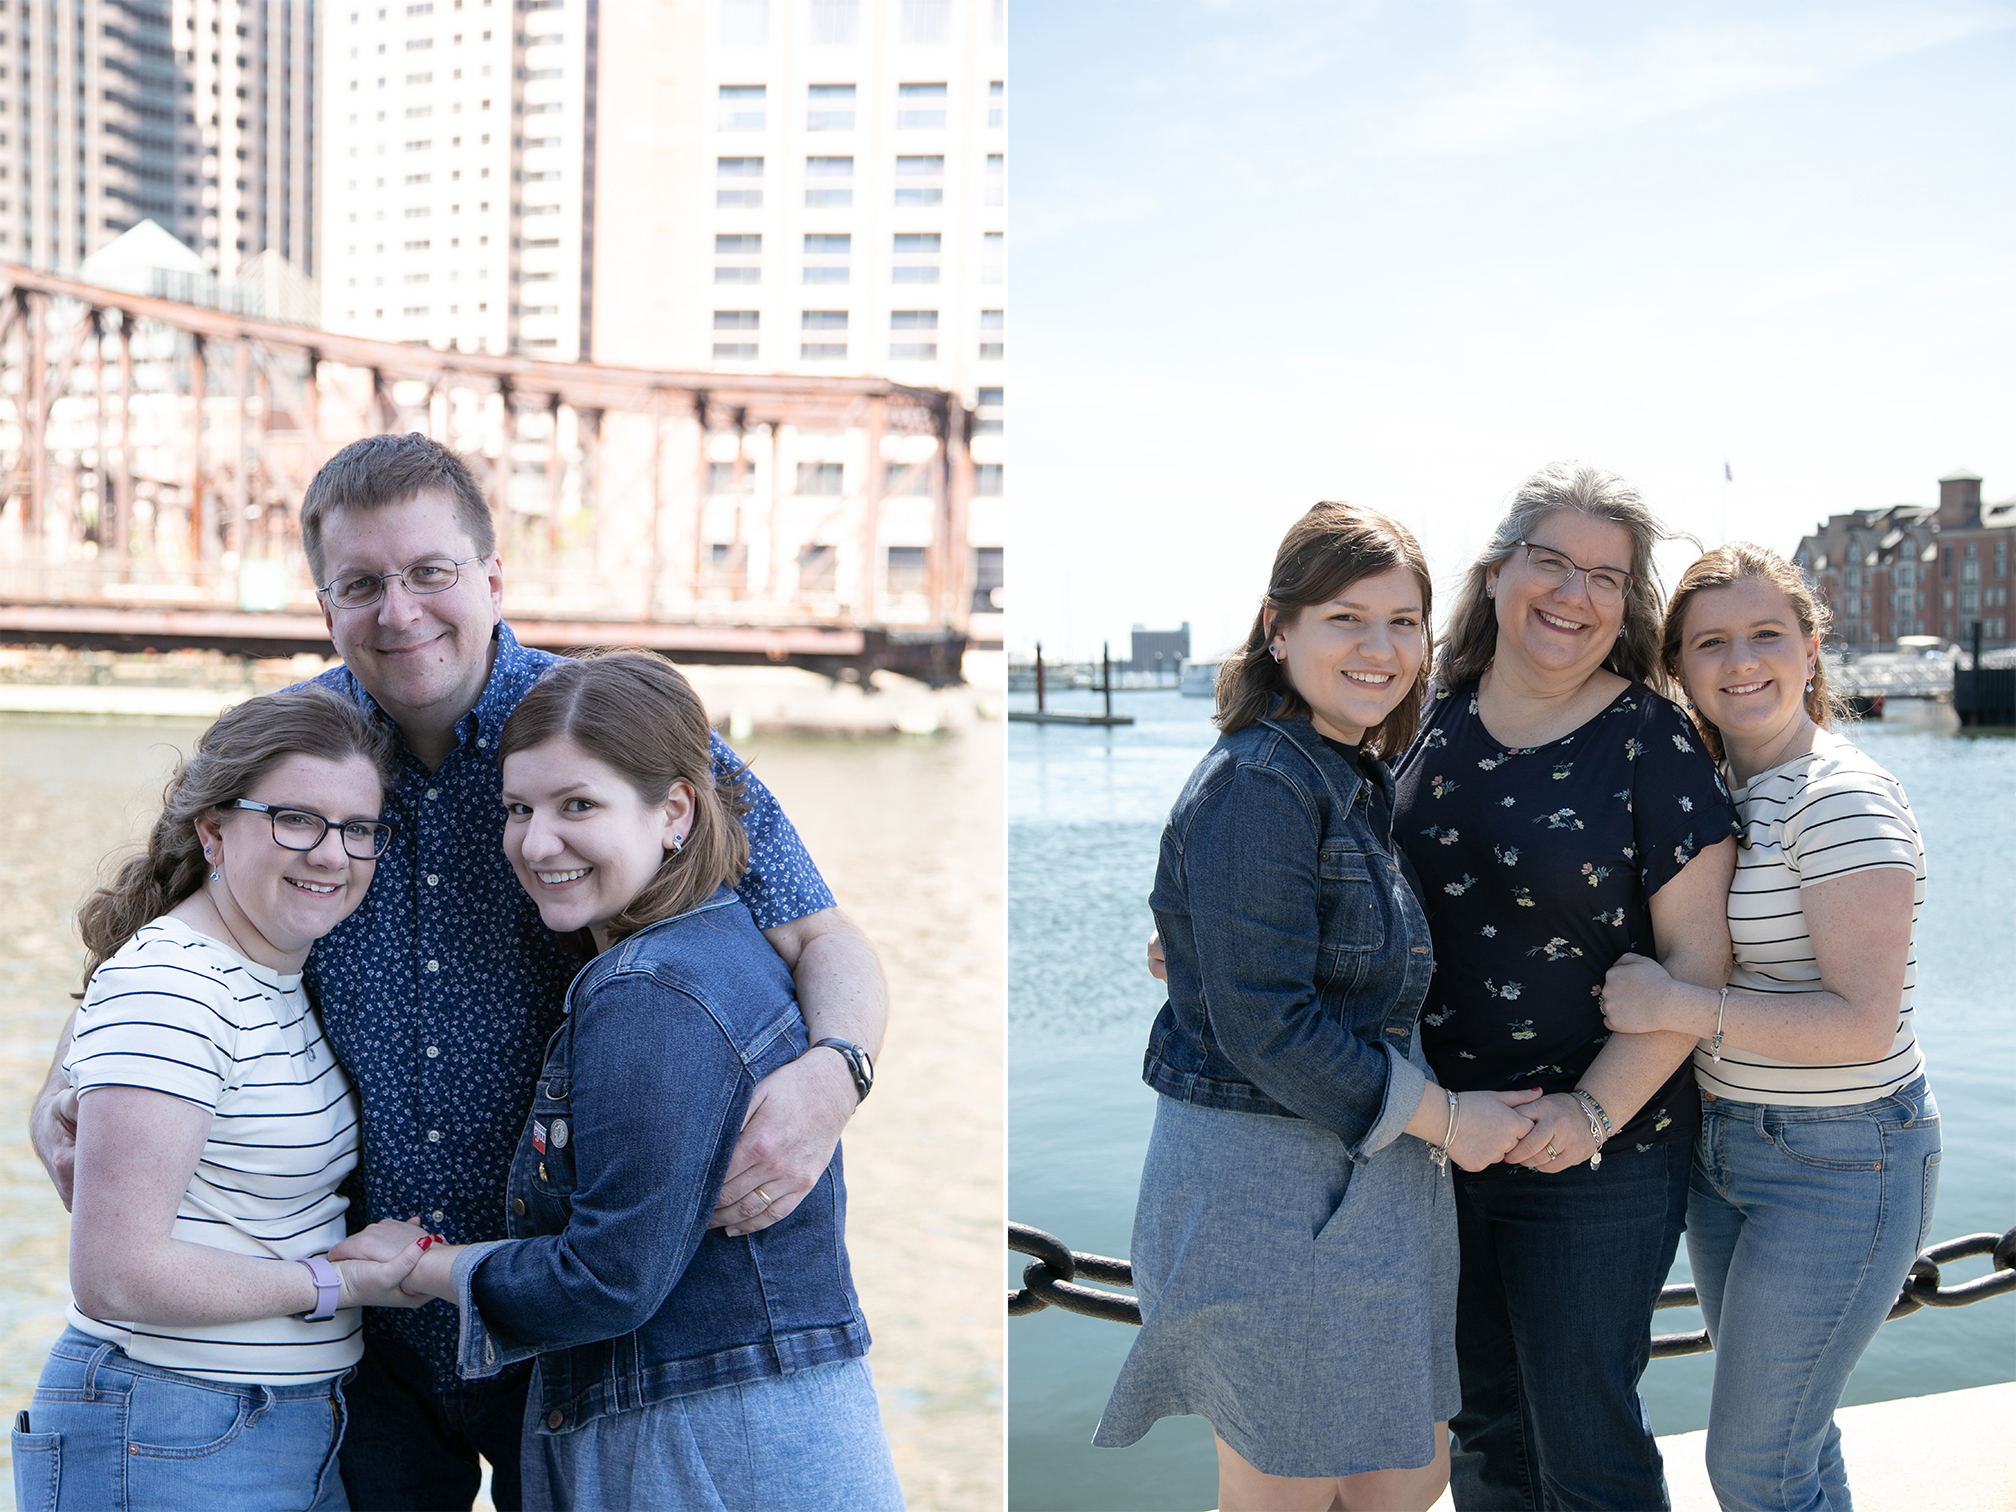 Family standing for photo at Boston harbor